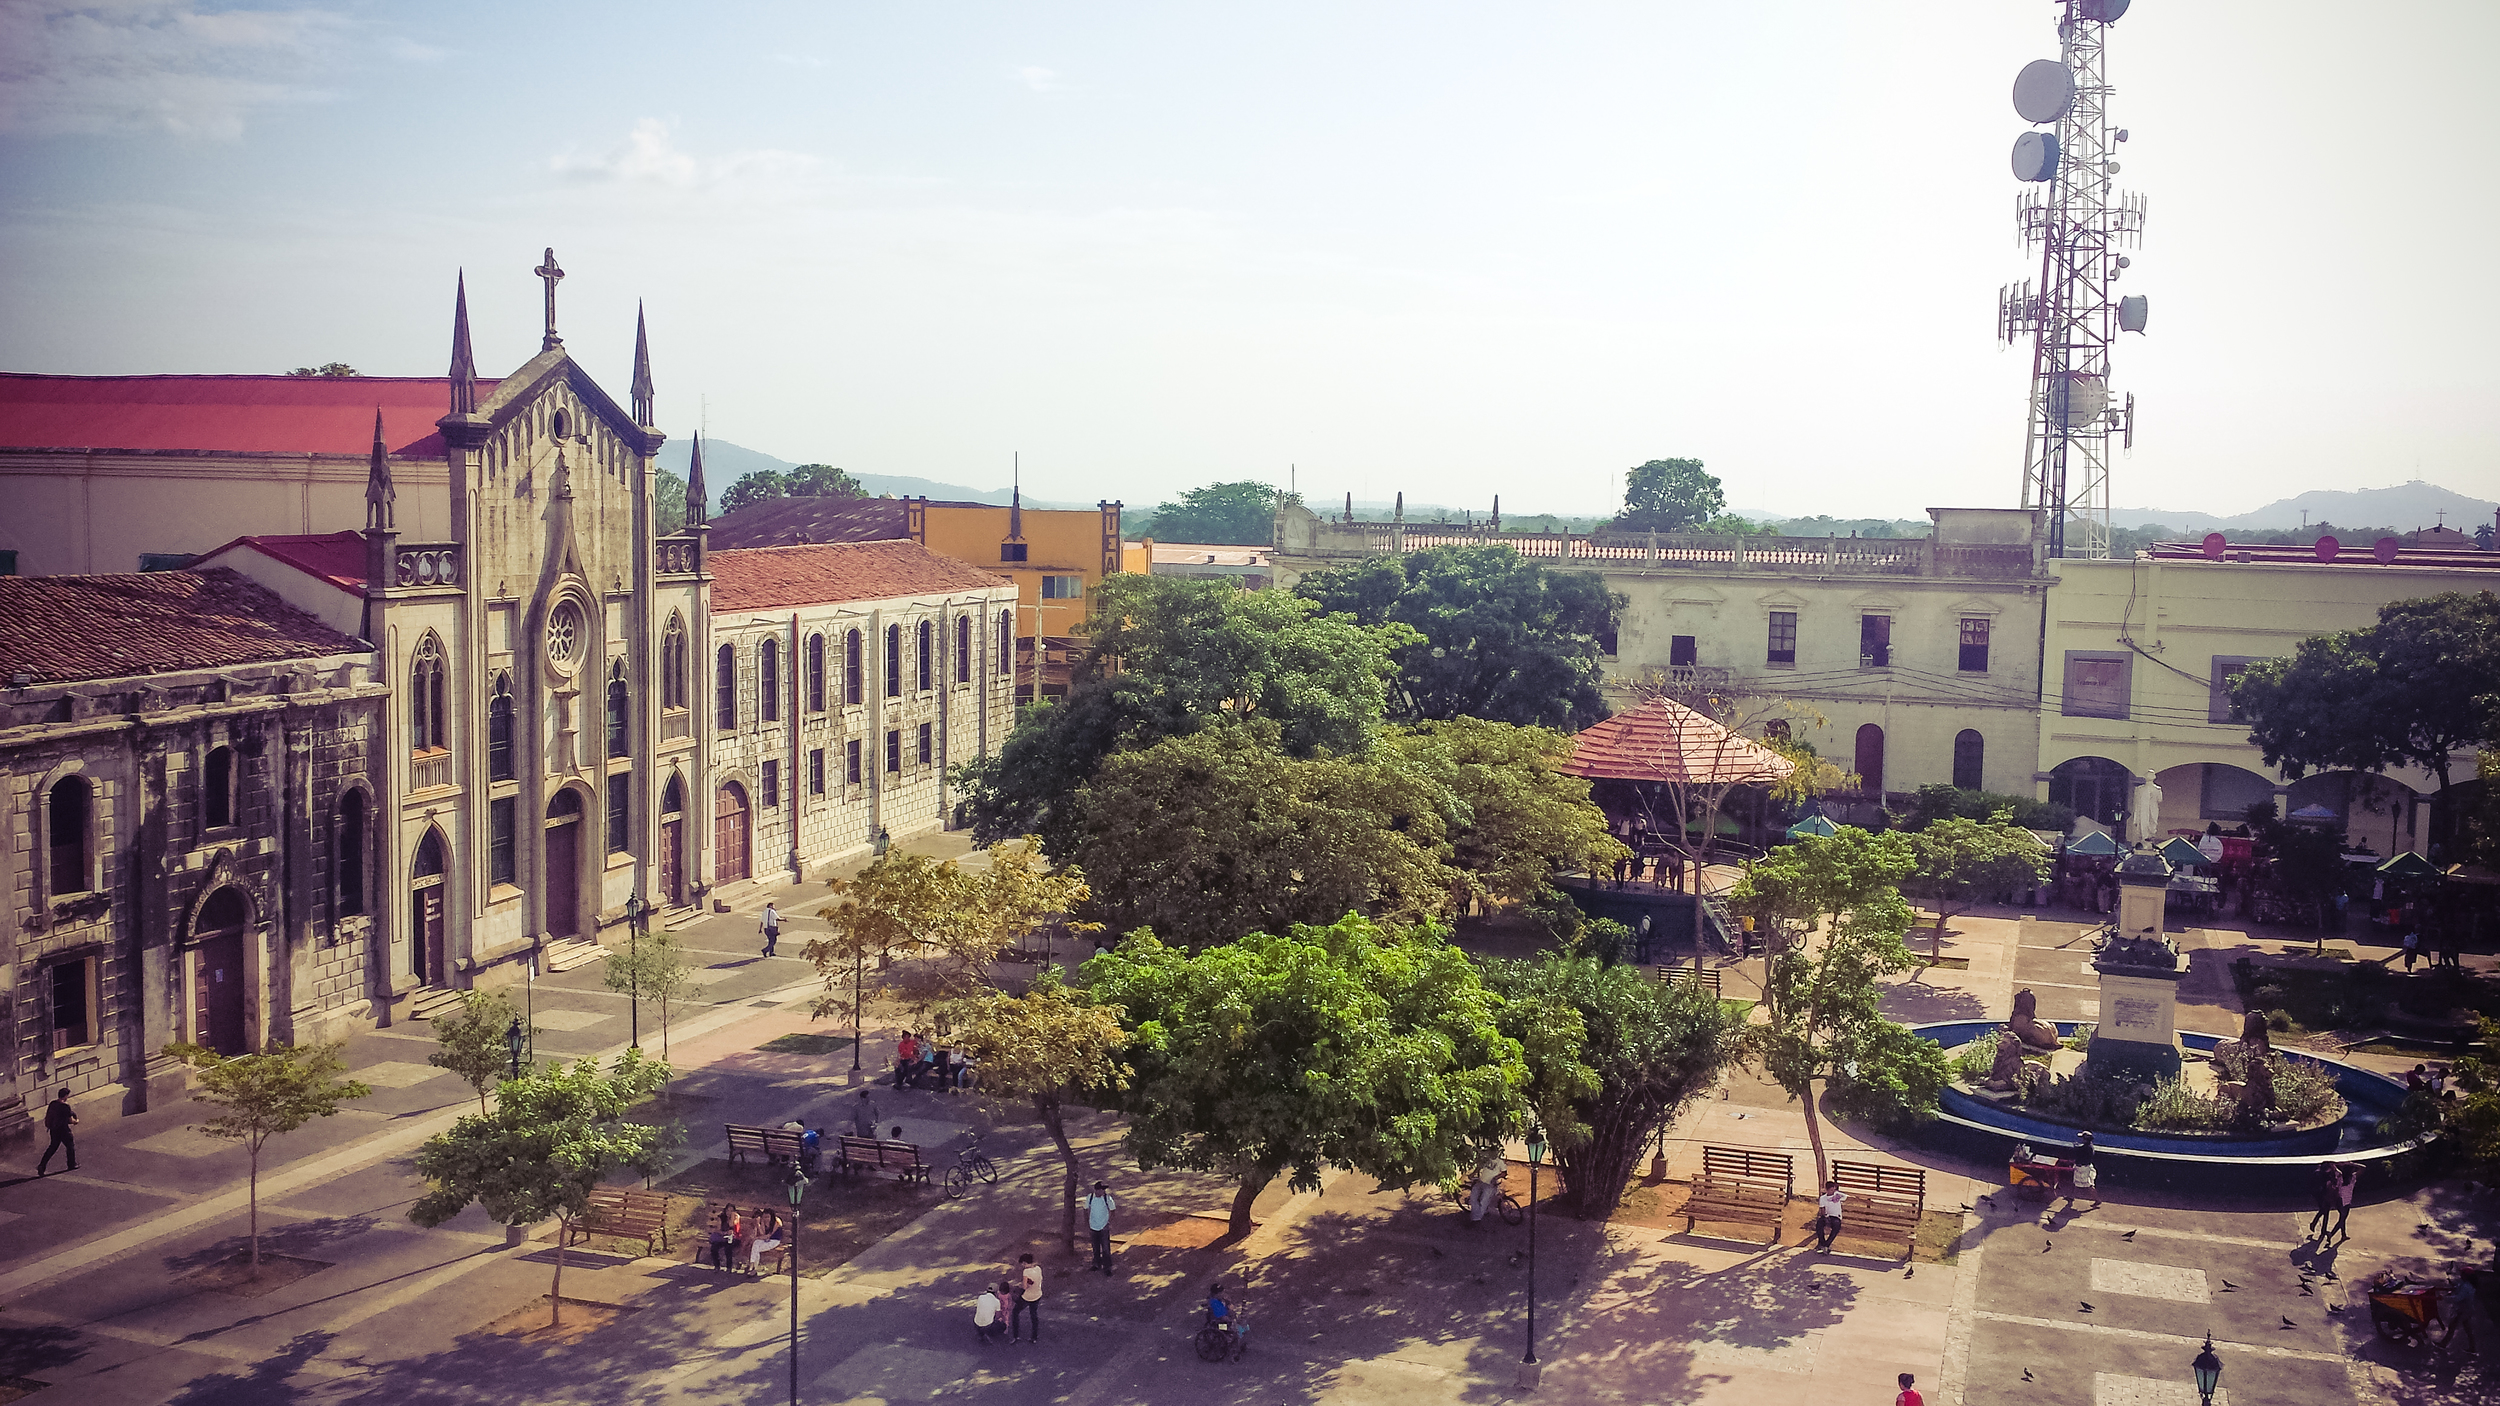 View from the Old Cathedral Roof